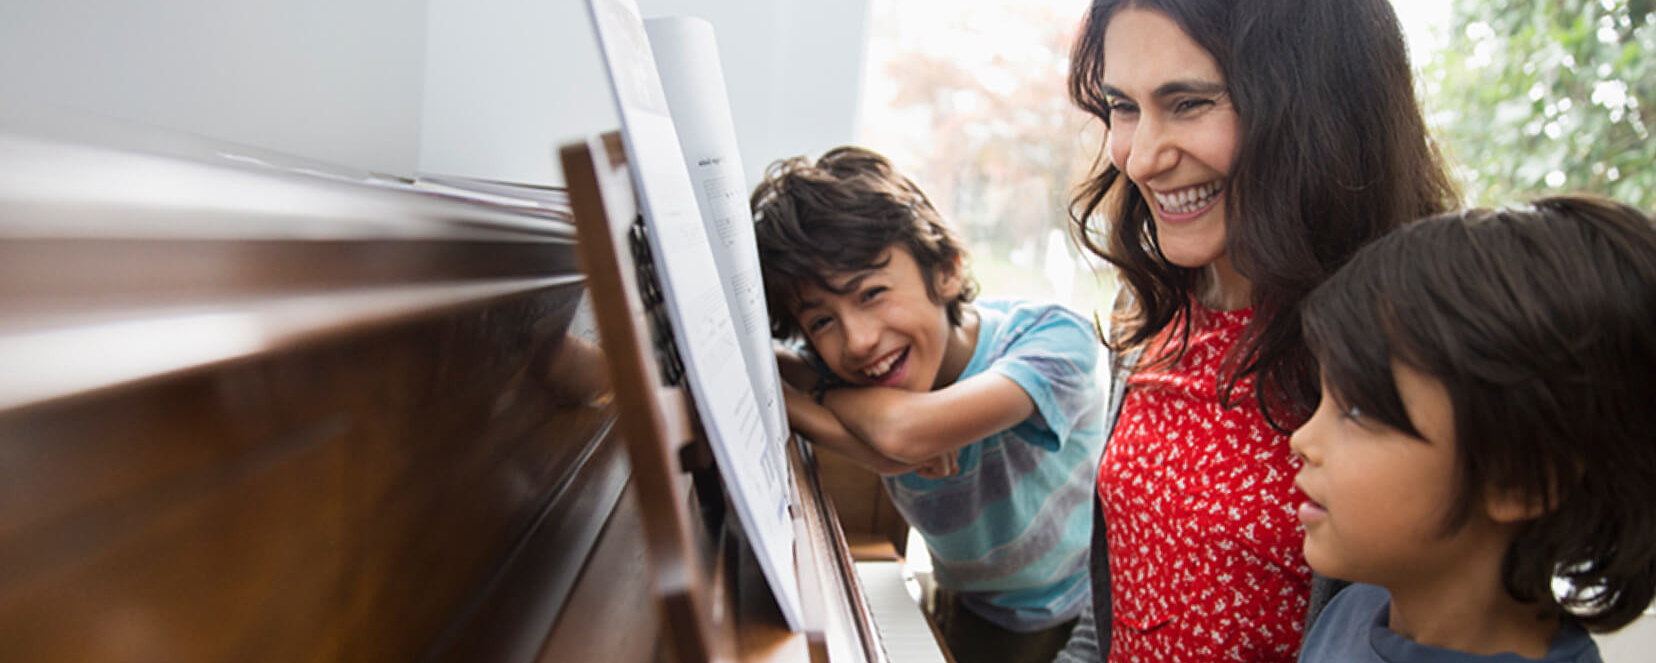 Canada Life picture - Family playing piano